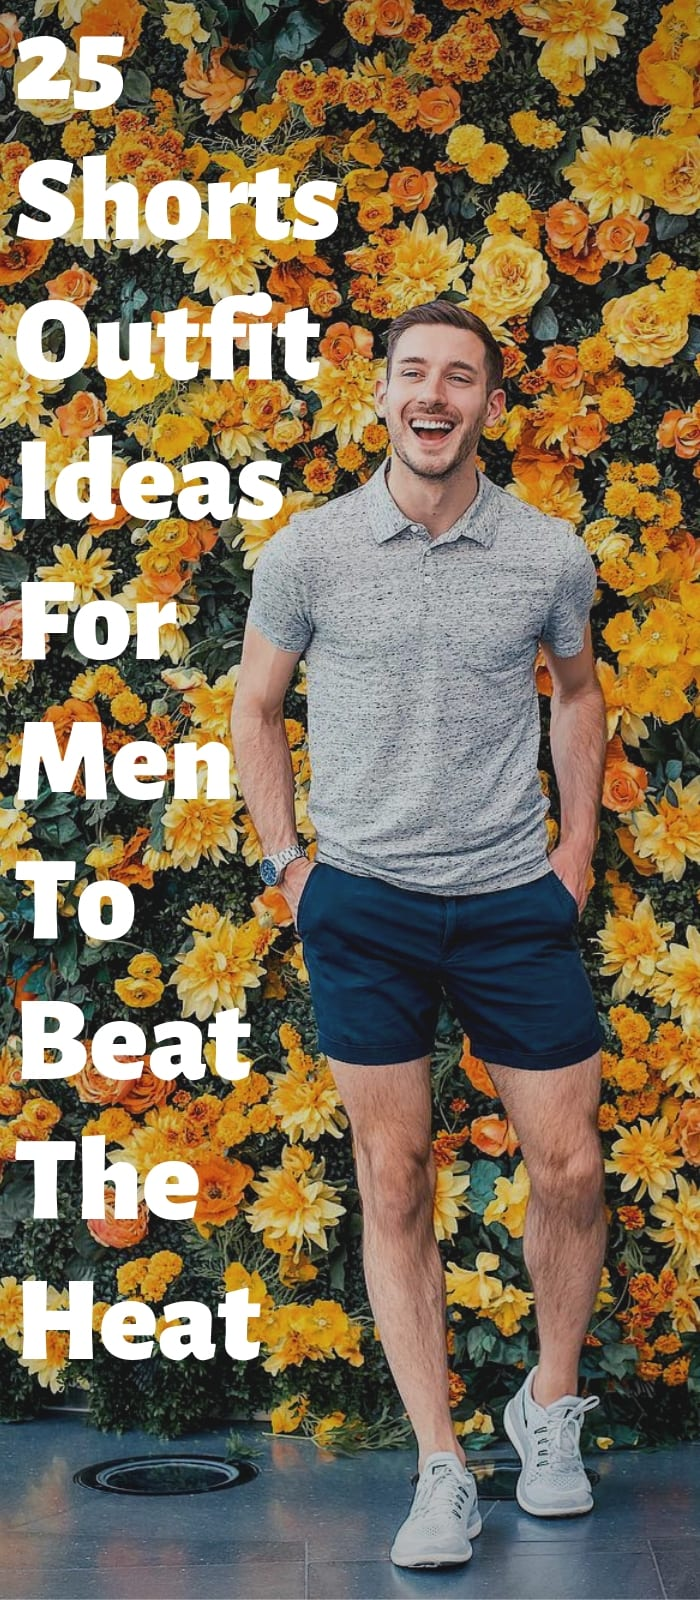 25 Shorts Outfit Ideas For Men To Beat The Heat (1)